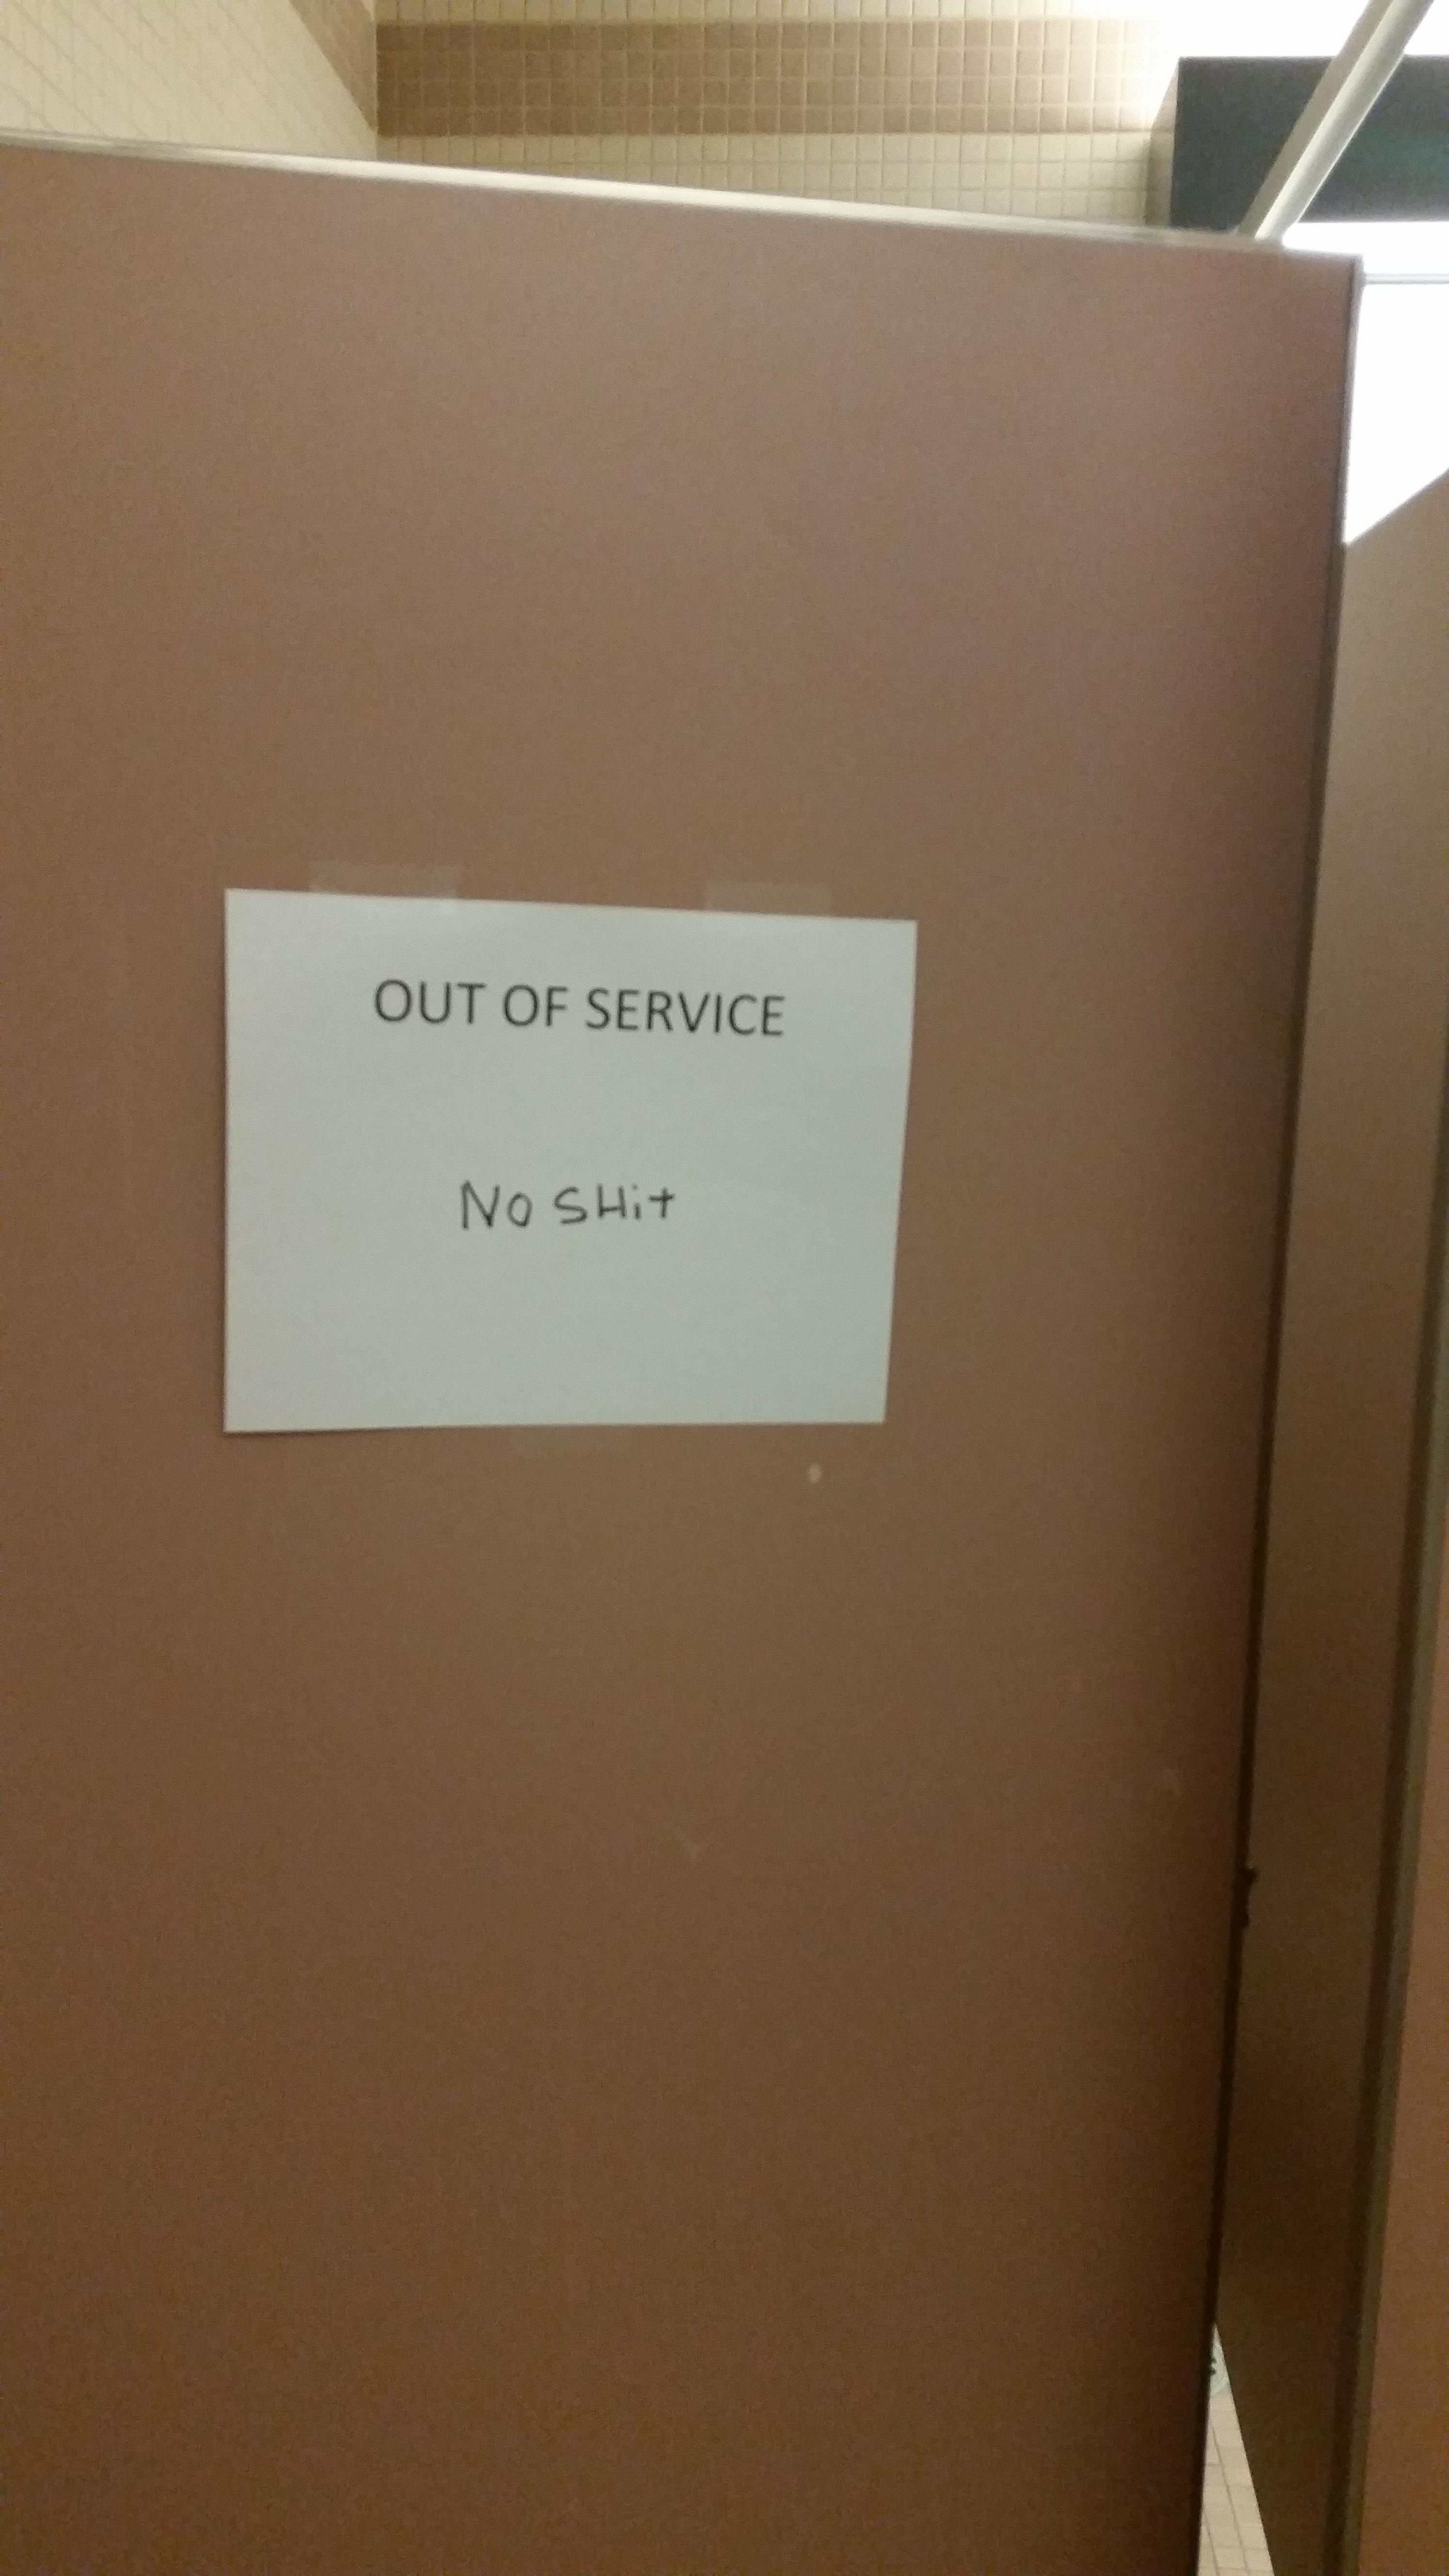 Bathroom Stall At Work Was Out Of Order So I Made A Slight